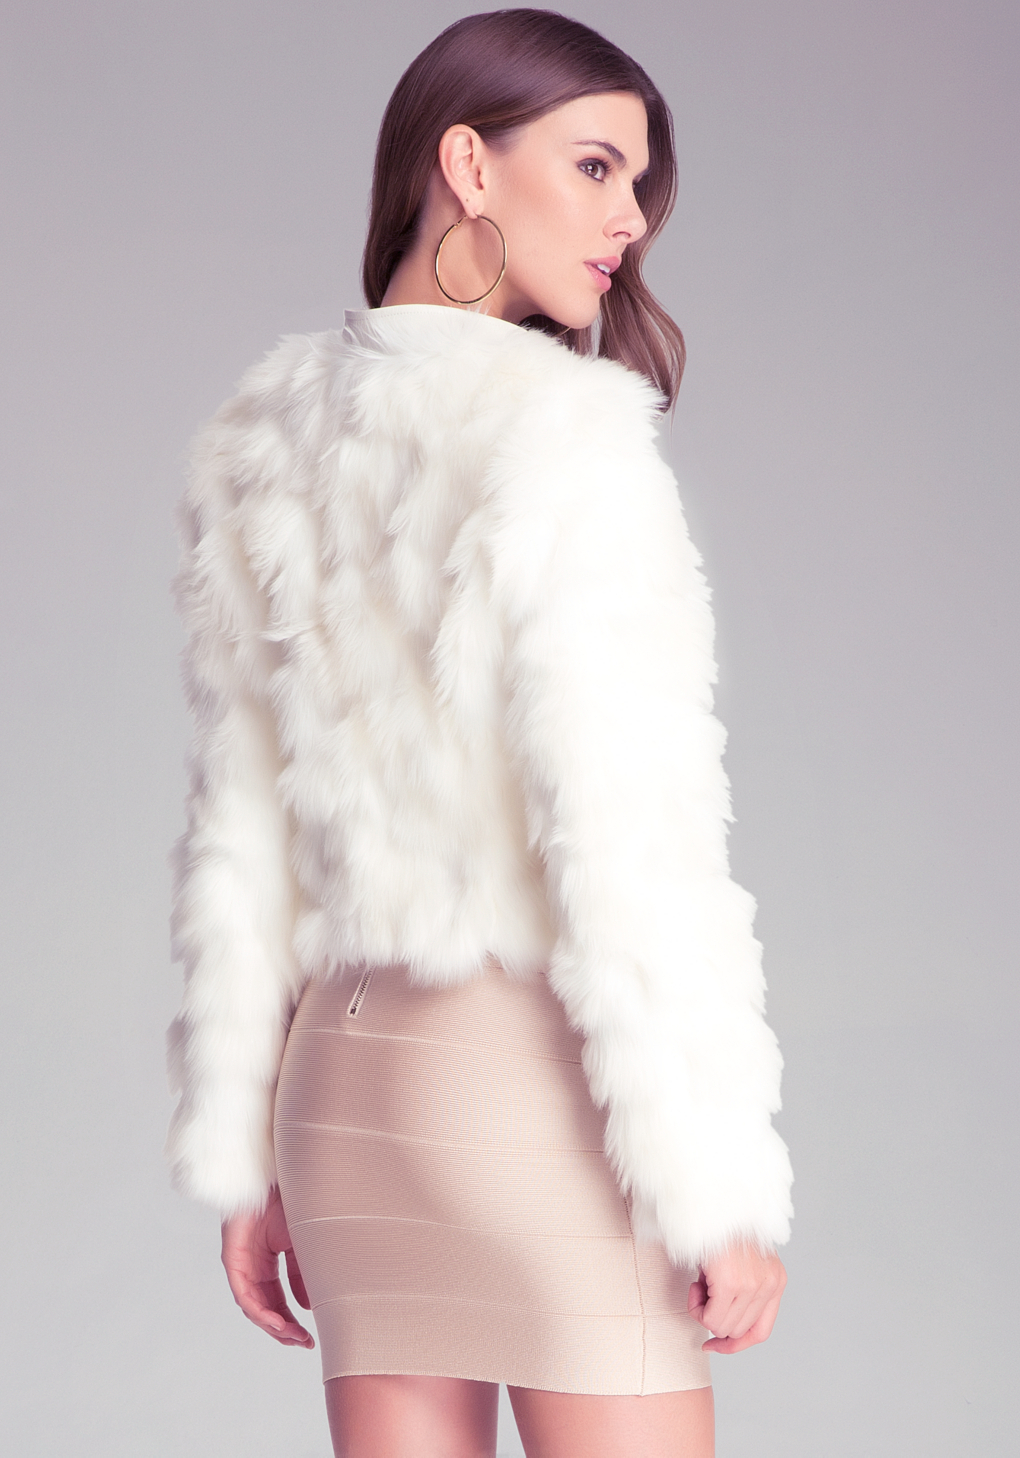 338861f63dfe Faux Fur White Jacket